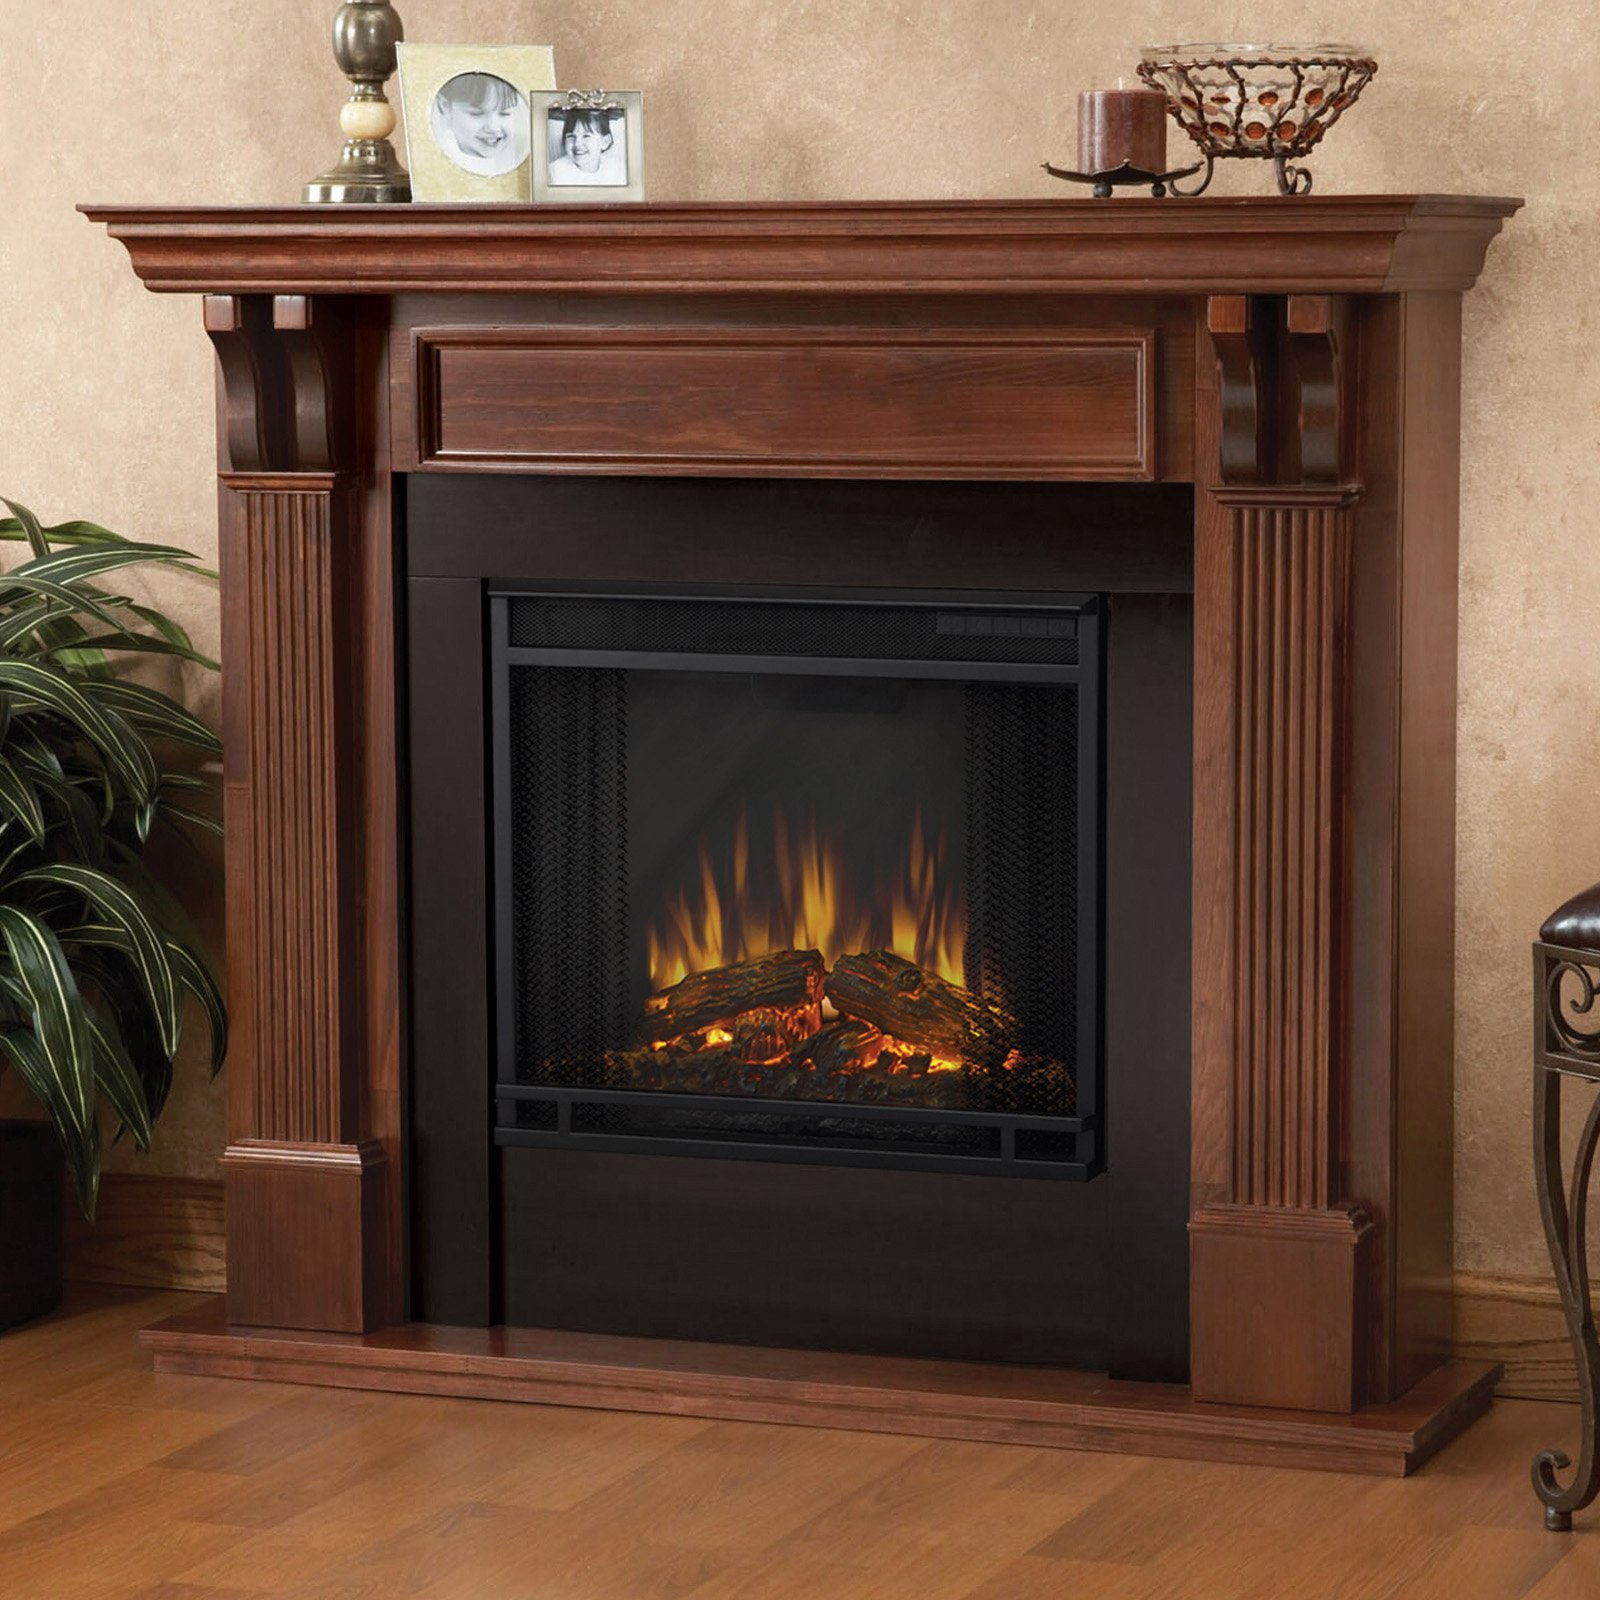 Free Shipping. Buy Real Flame Ashley Indoor Electric Fireplace - Mahogany at Walmart.com